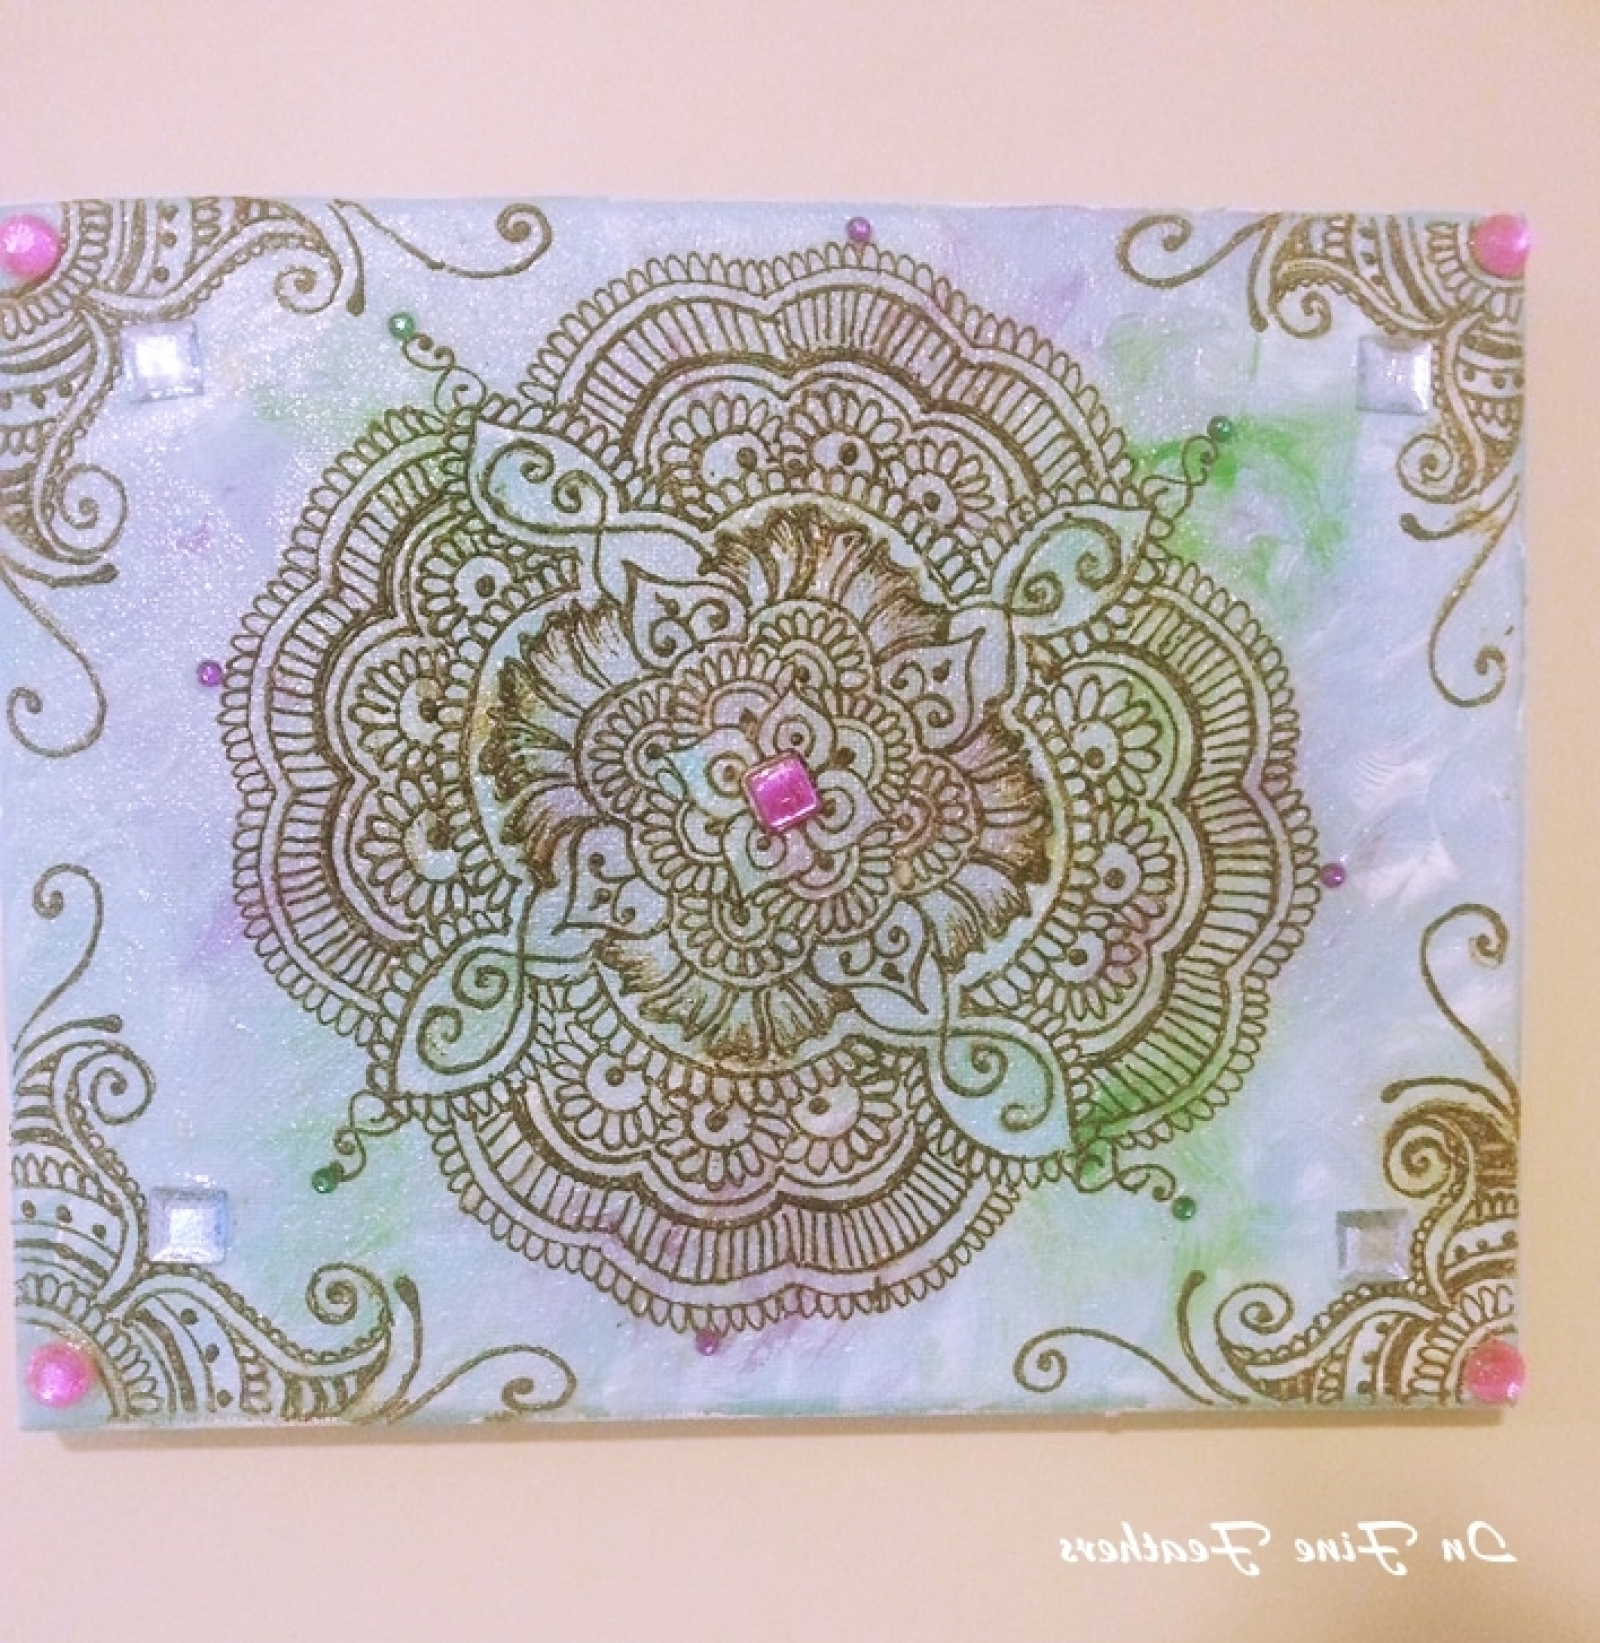 2018 Henna Mandala Boho Chic Wall Art Yoga Studio Office Spring Decor Regarding Henna Wall Art (View 1 of 20)